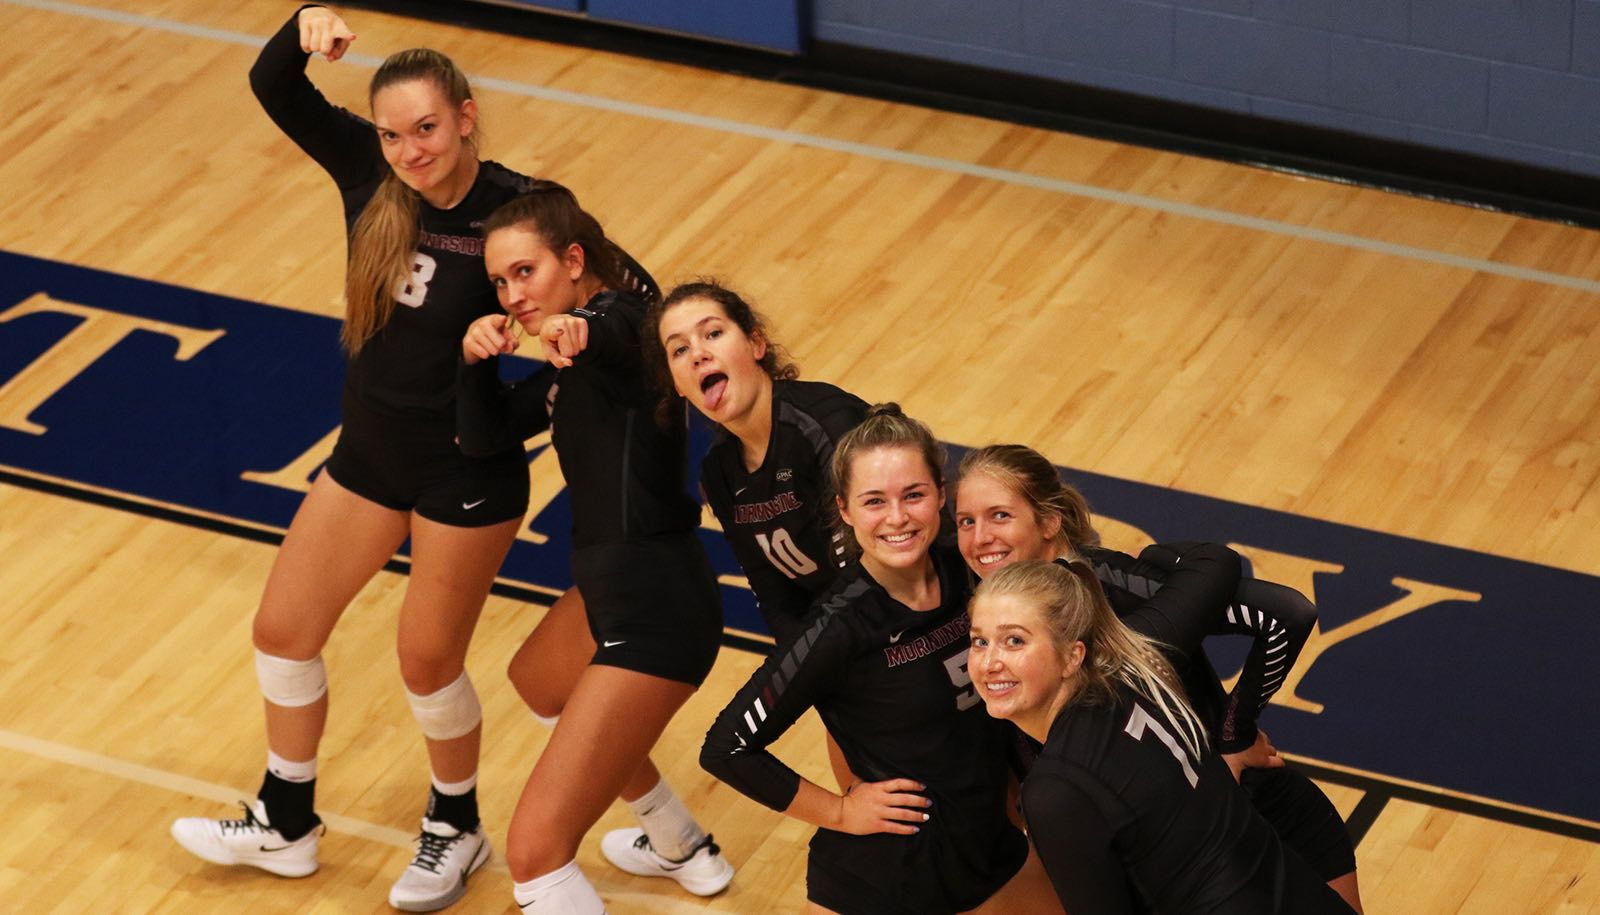 Women's volleyball players being goofy